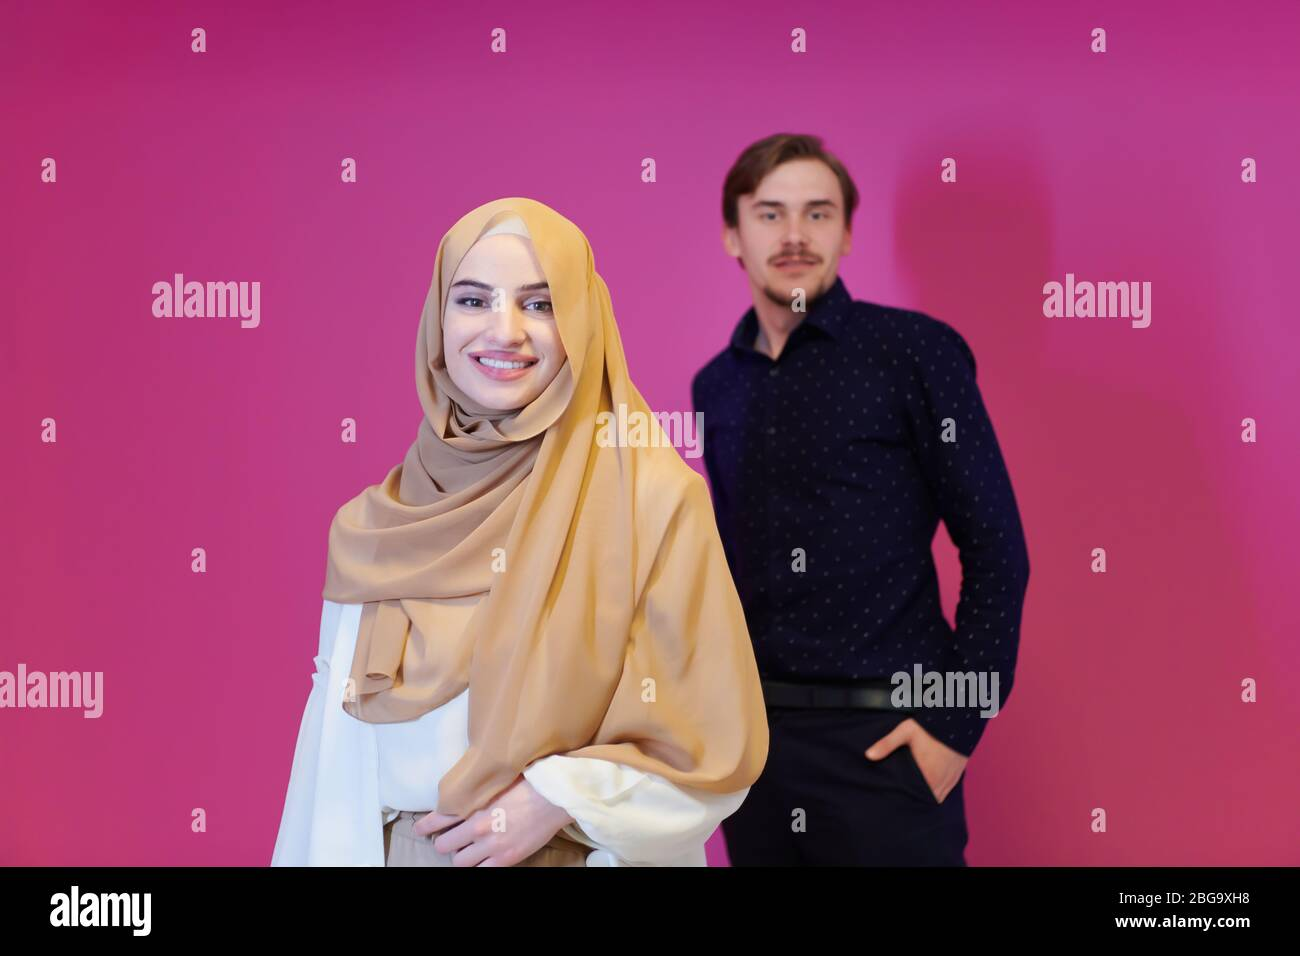 ✓ free for commercial use ✓ high quality images. Portrait Of Young Muslim Couple Woman In Fashionable Dress With Hijab Isolated On Pink Background Representing Modern Islam Fashion And Ramadan Kareem Stock Photo Alamy